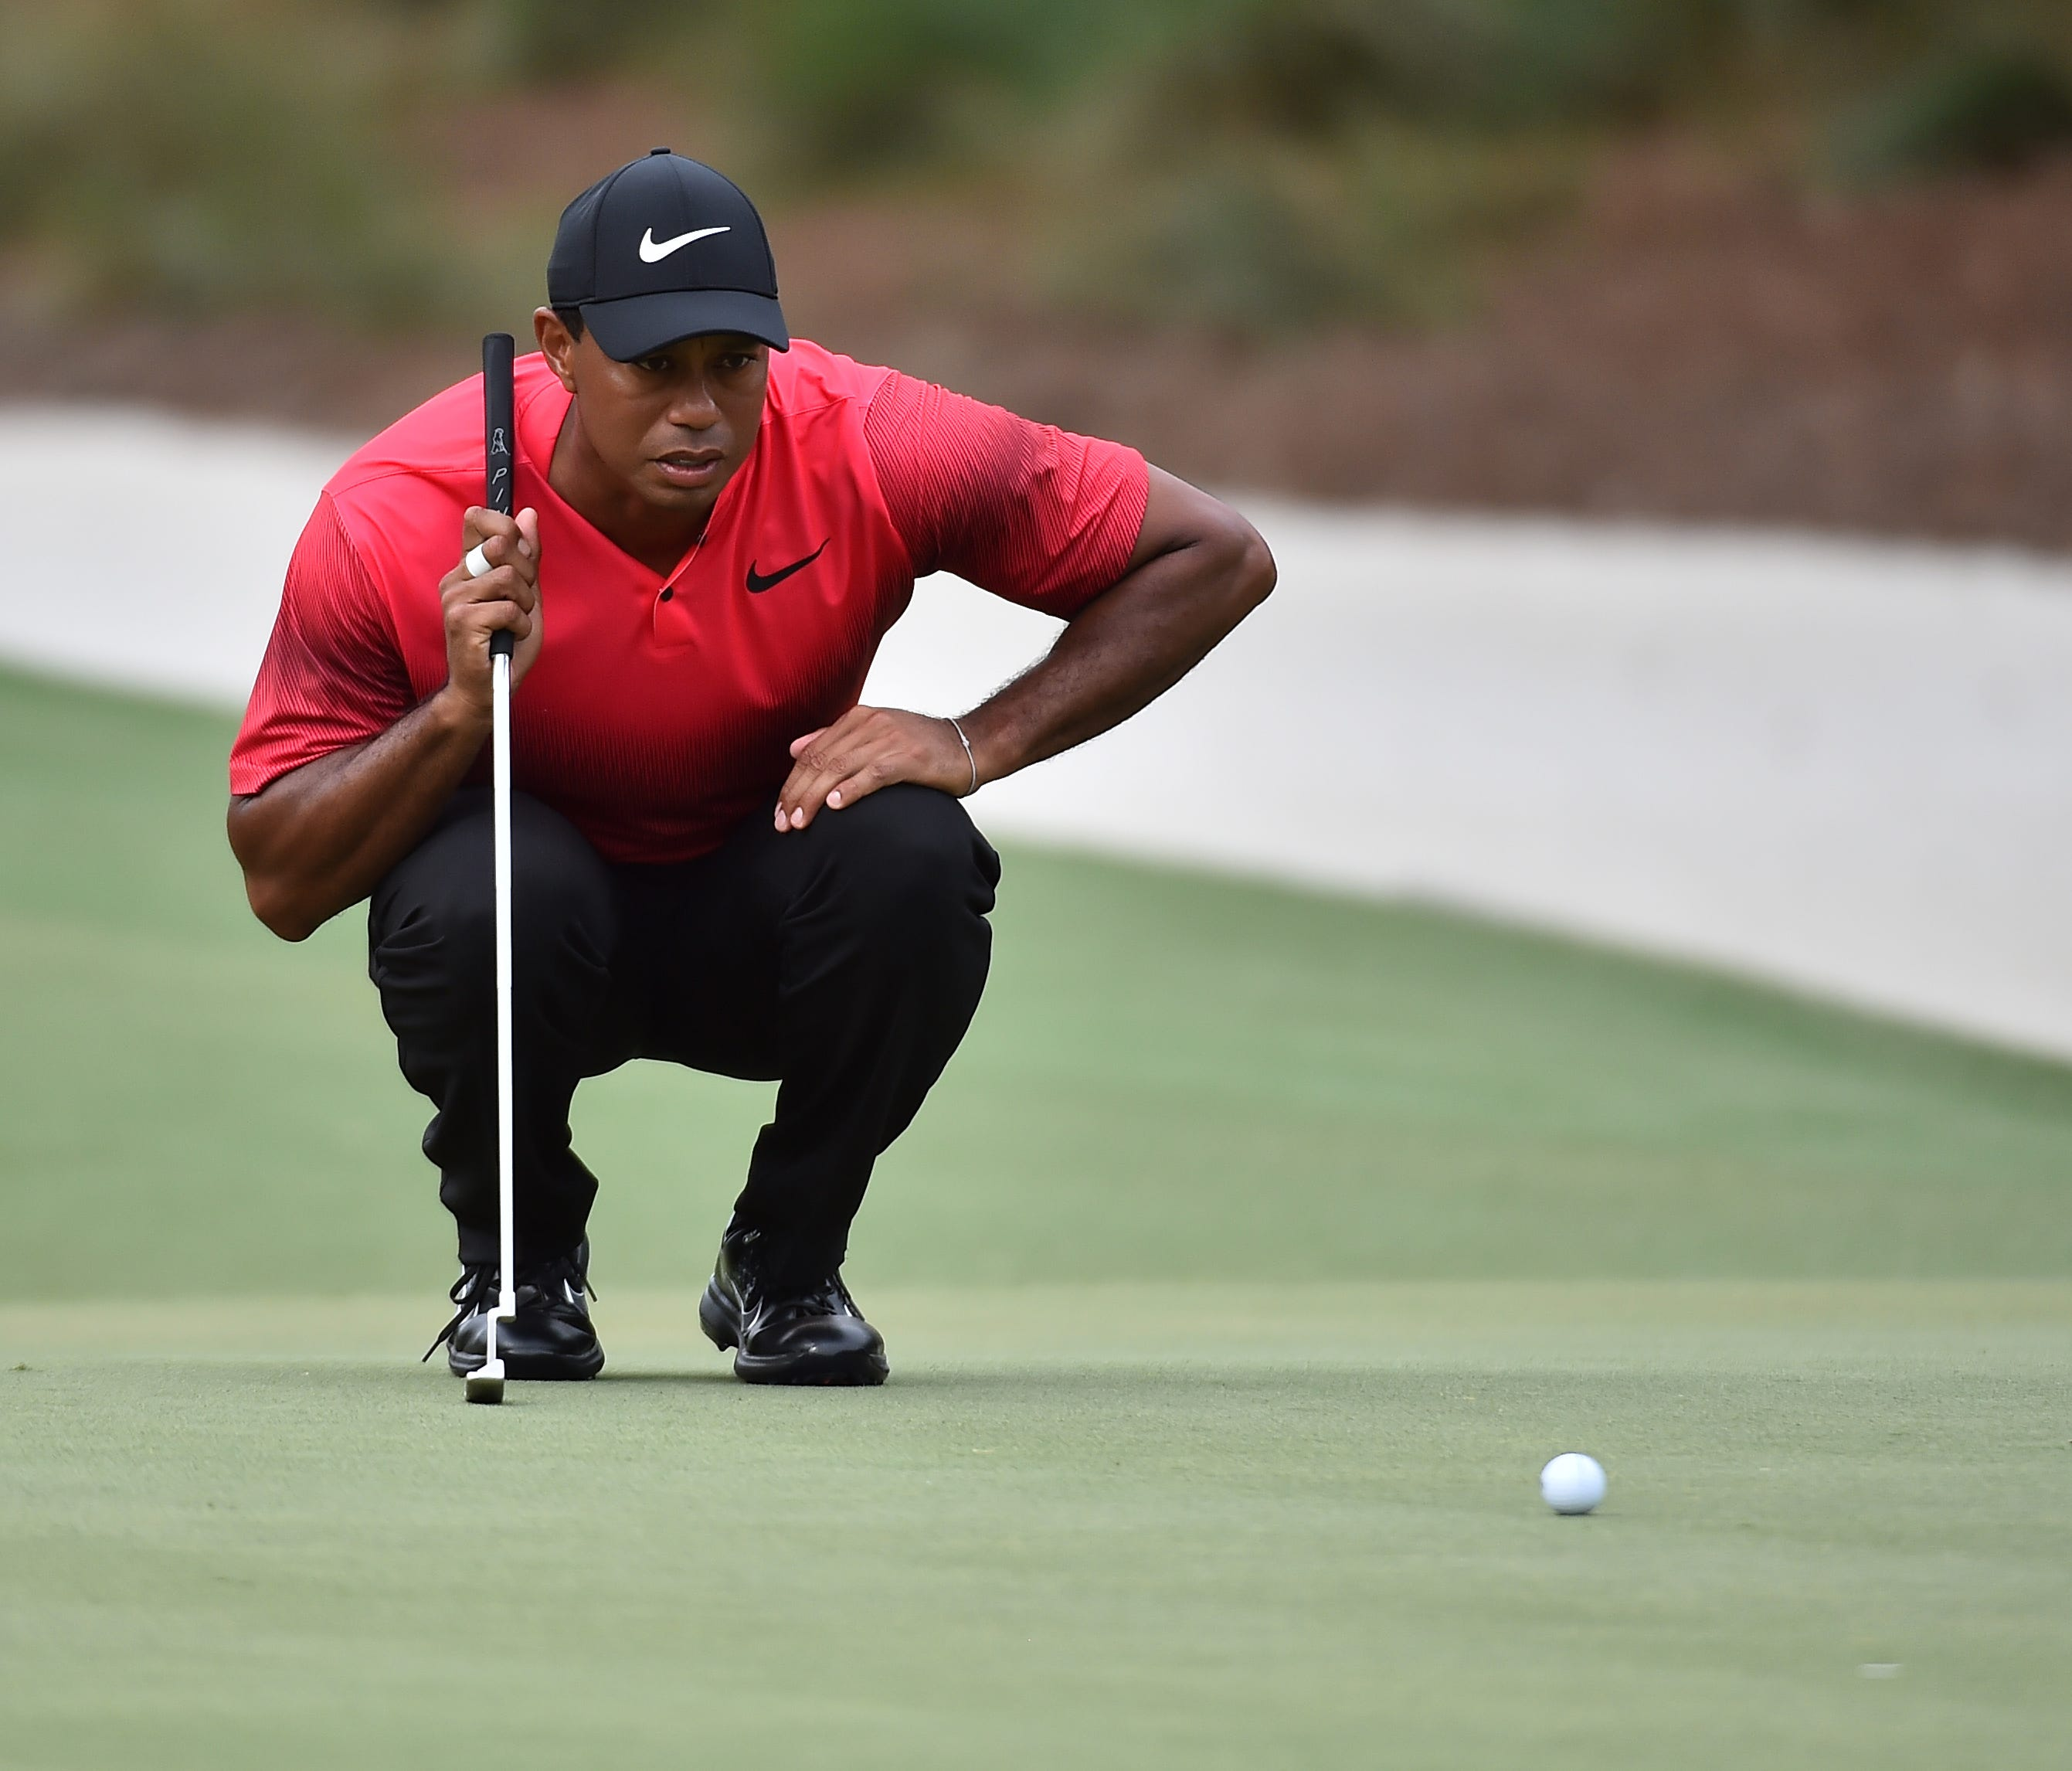 Tiger Woods lines up a putt on the 14th green during the final round of The Players Championship.